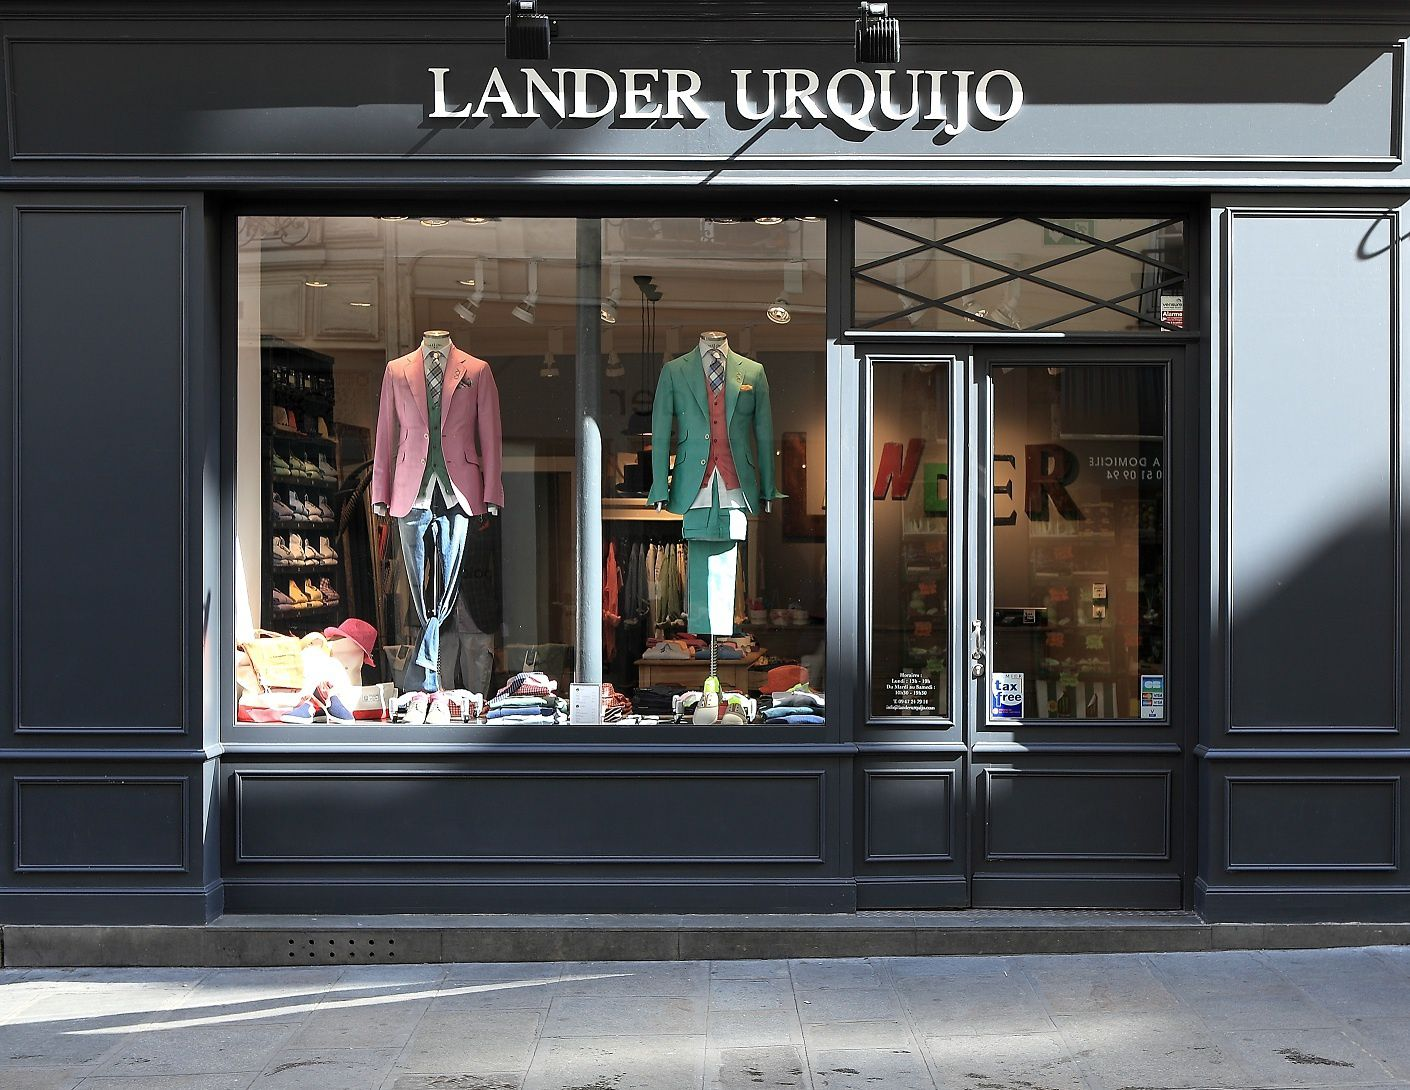 Lander urquijo advel l 39 art de vivre l gamment - Esprit magasin paris ...